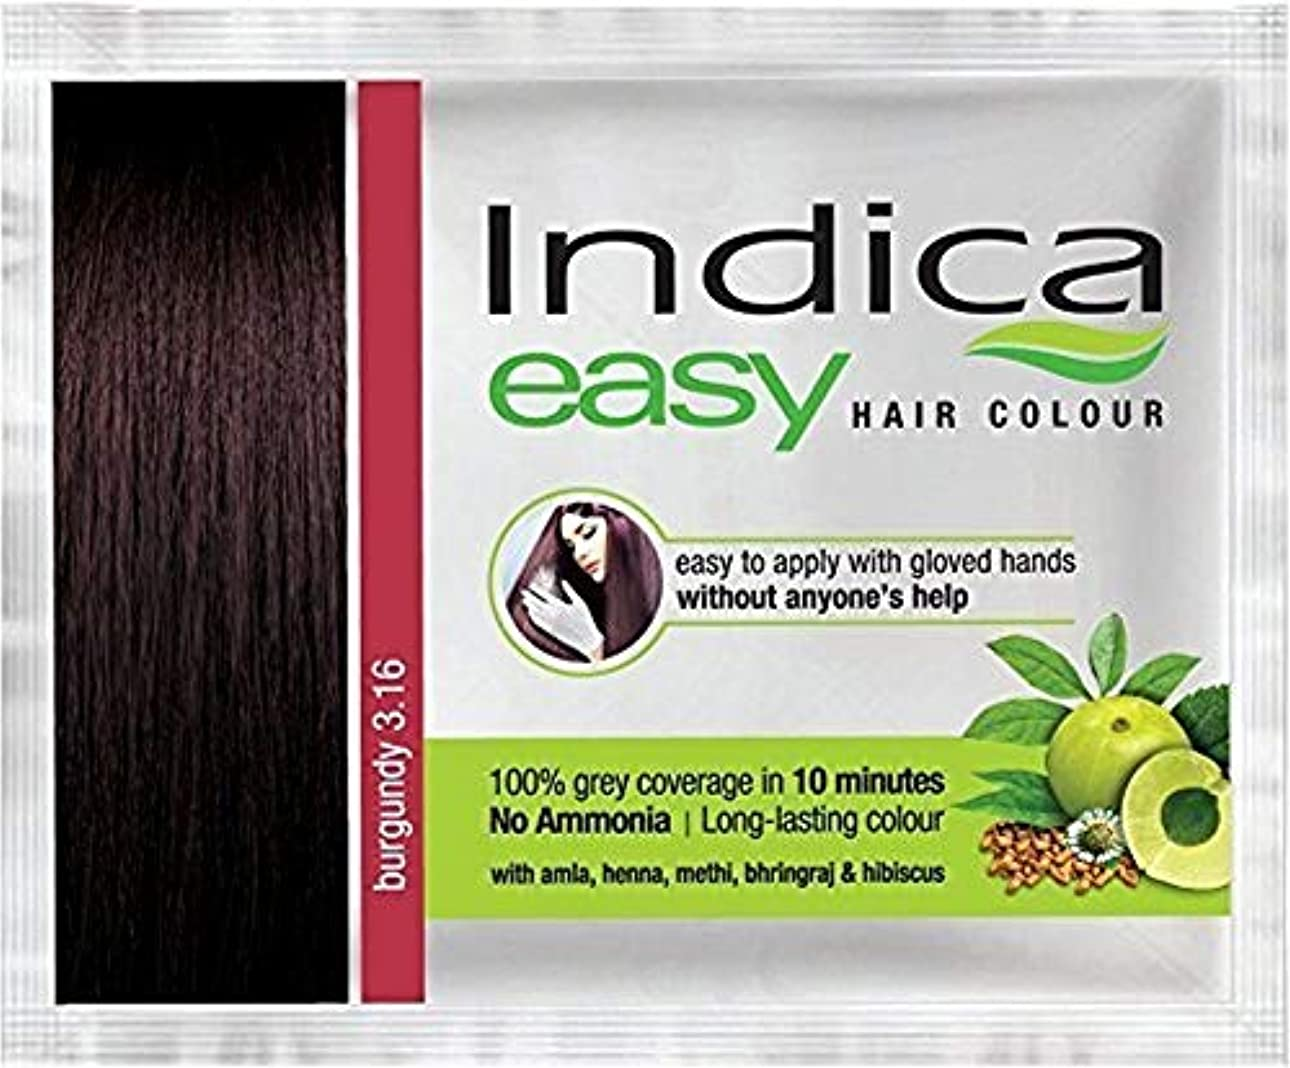 バレーボール手商業のNexxa 6Pc Indica Easy10 Minutes Herbal Hair Color Shampoo Base Burgundy Herbs